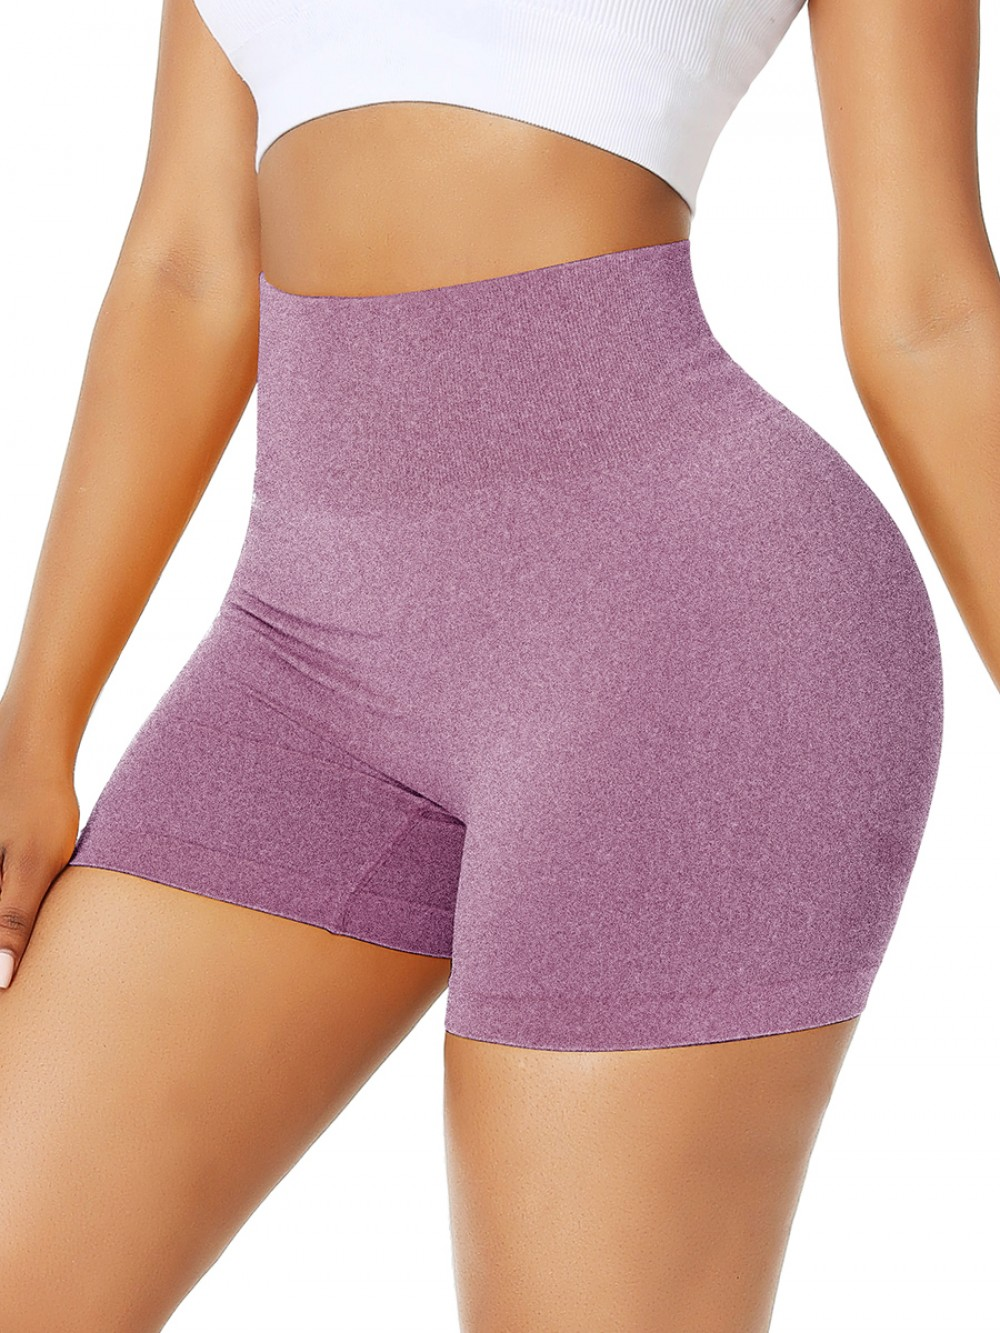 Light Purple Short Athletic Shorts Solid Color High Rise For Workout